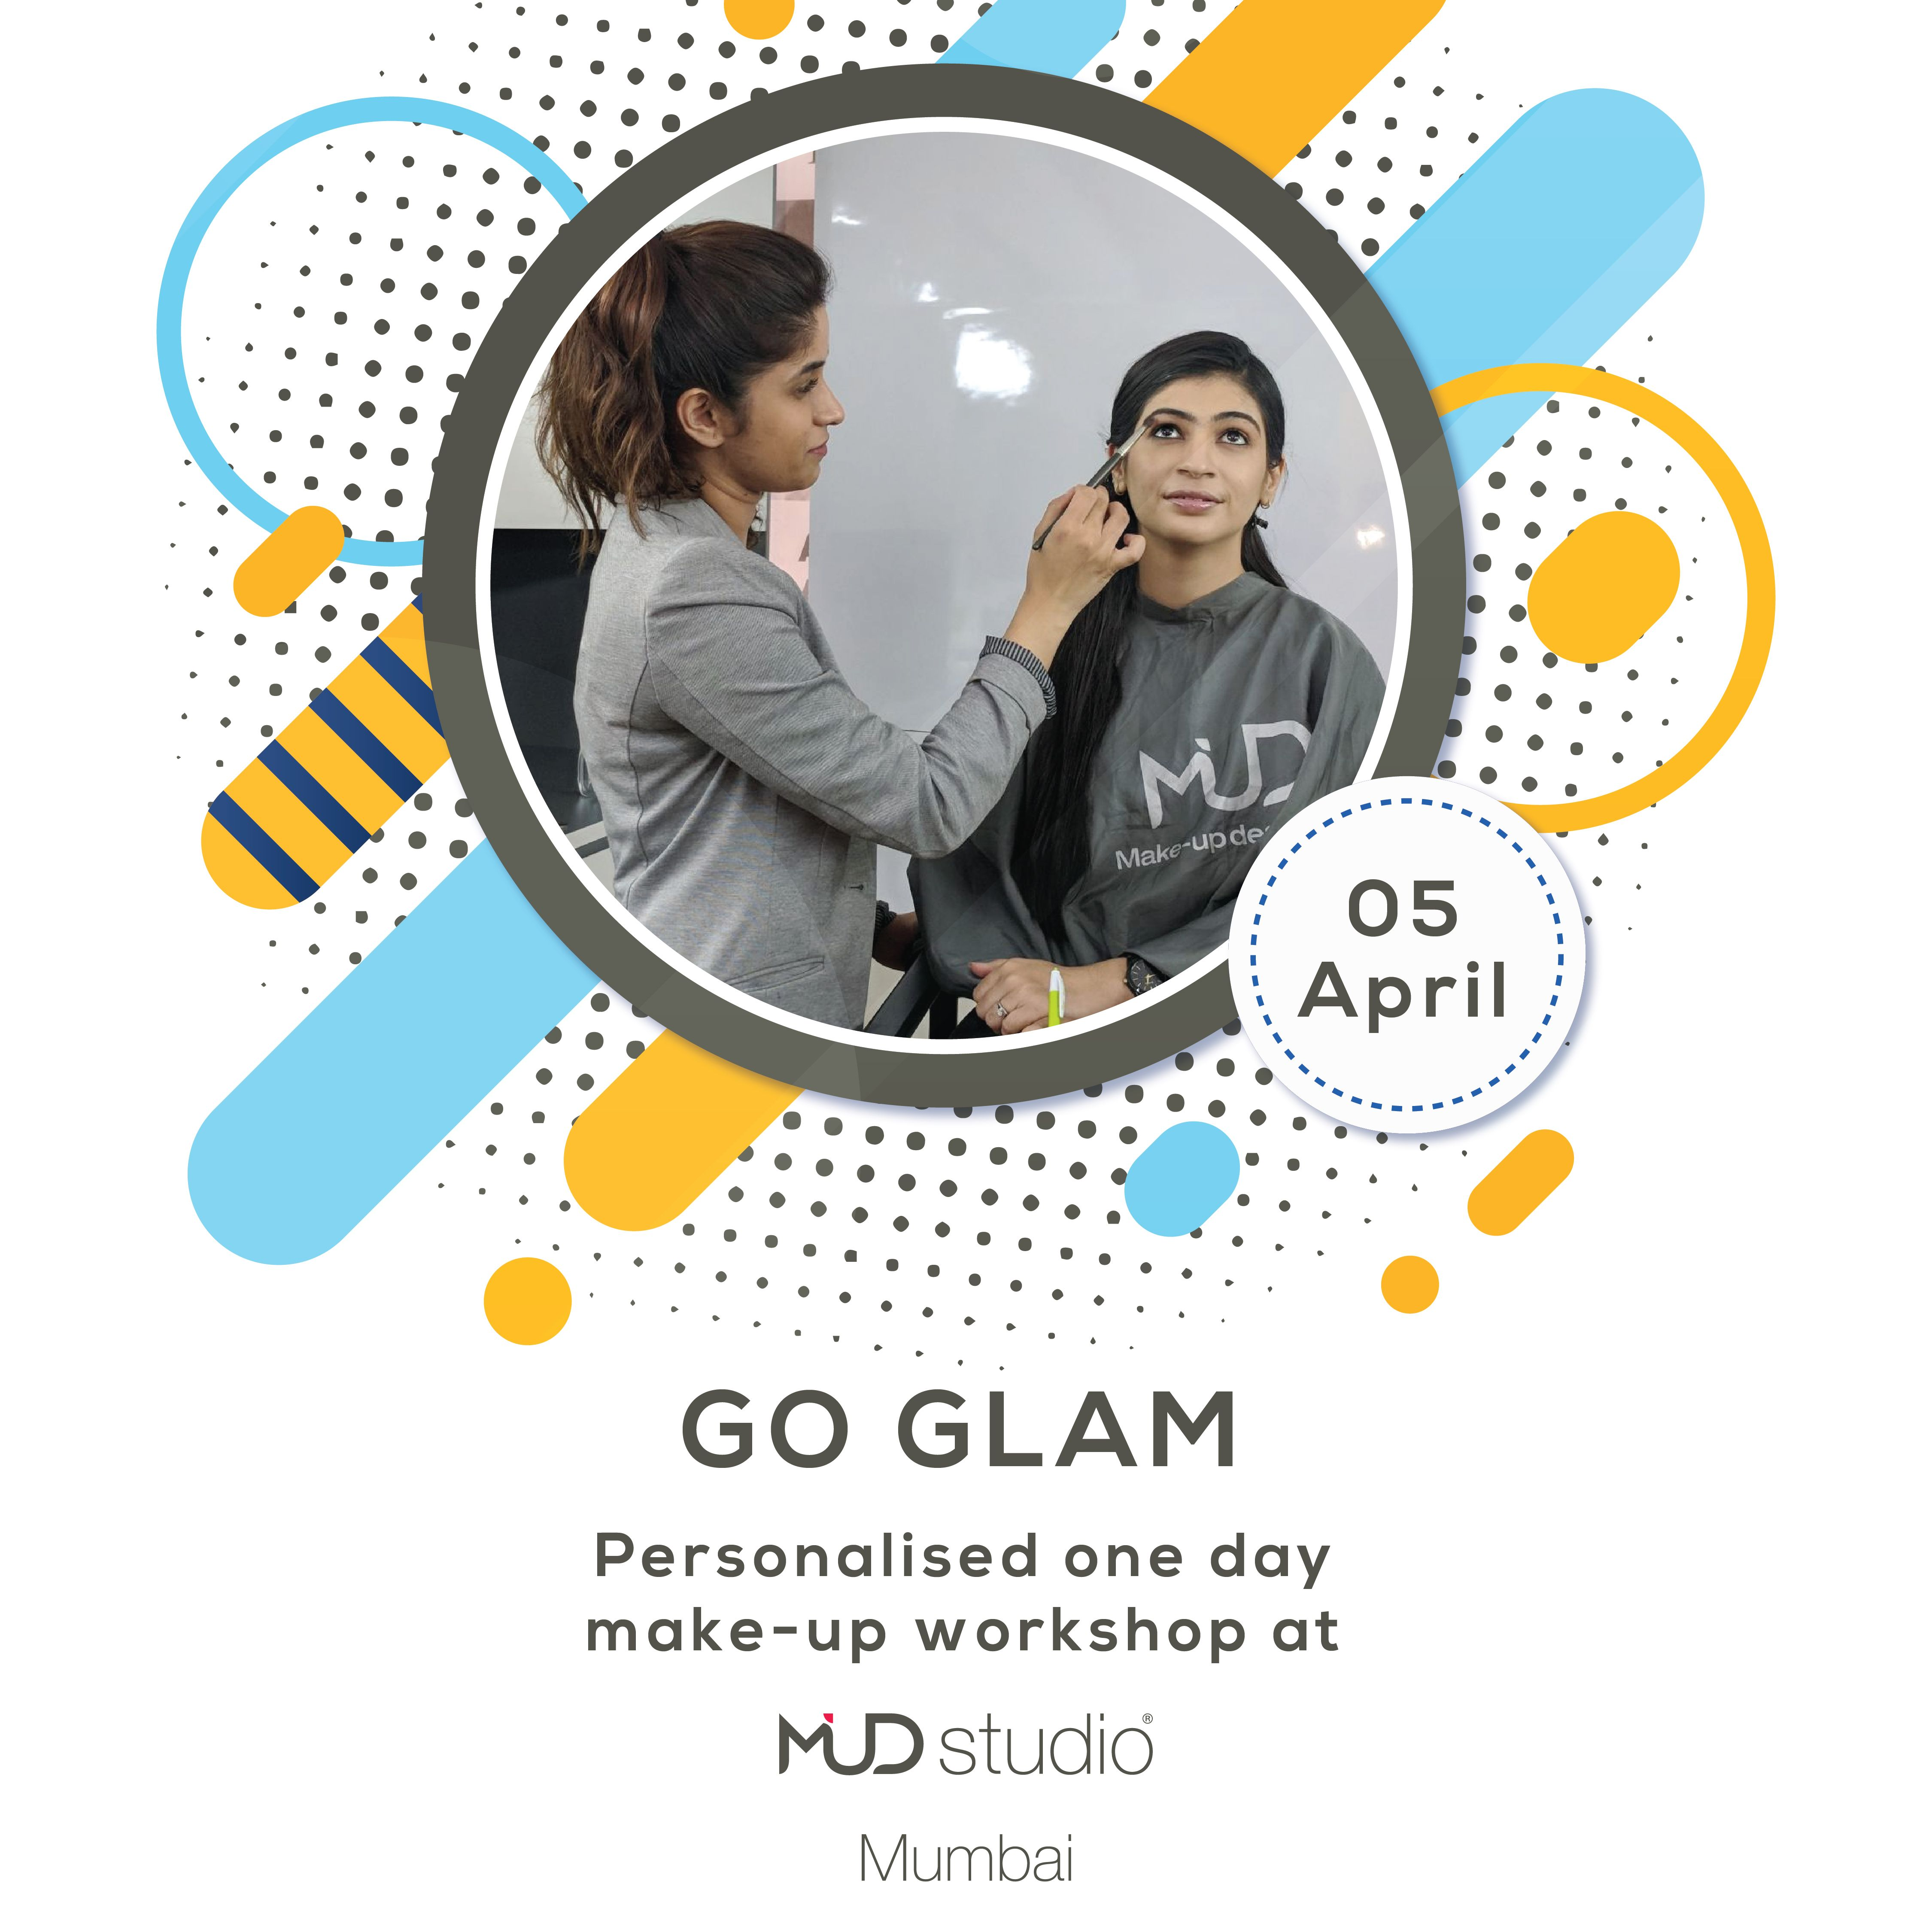 Go Glam. Personalized One Day at Mud Studio